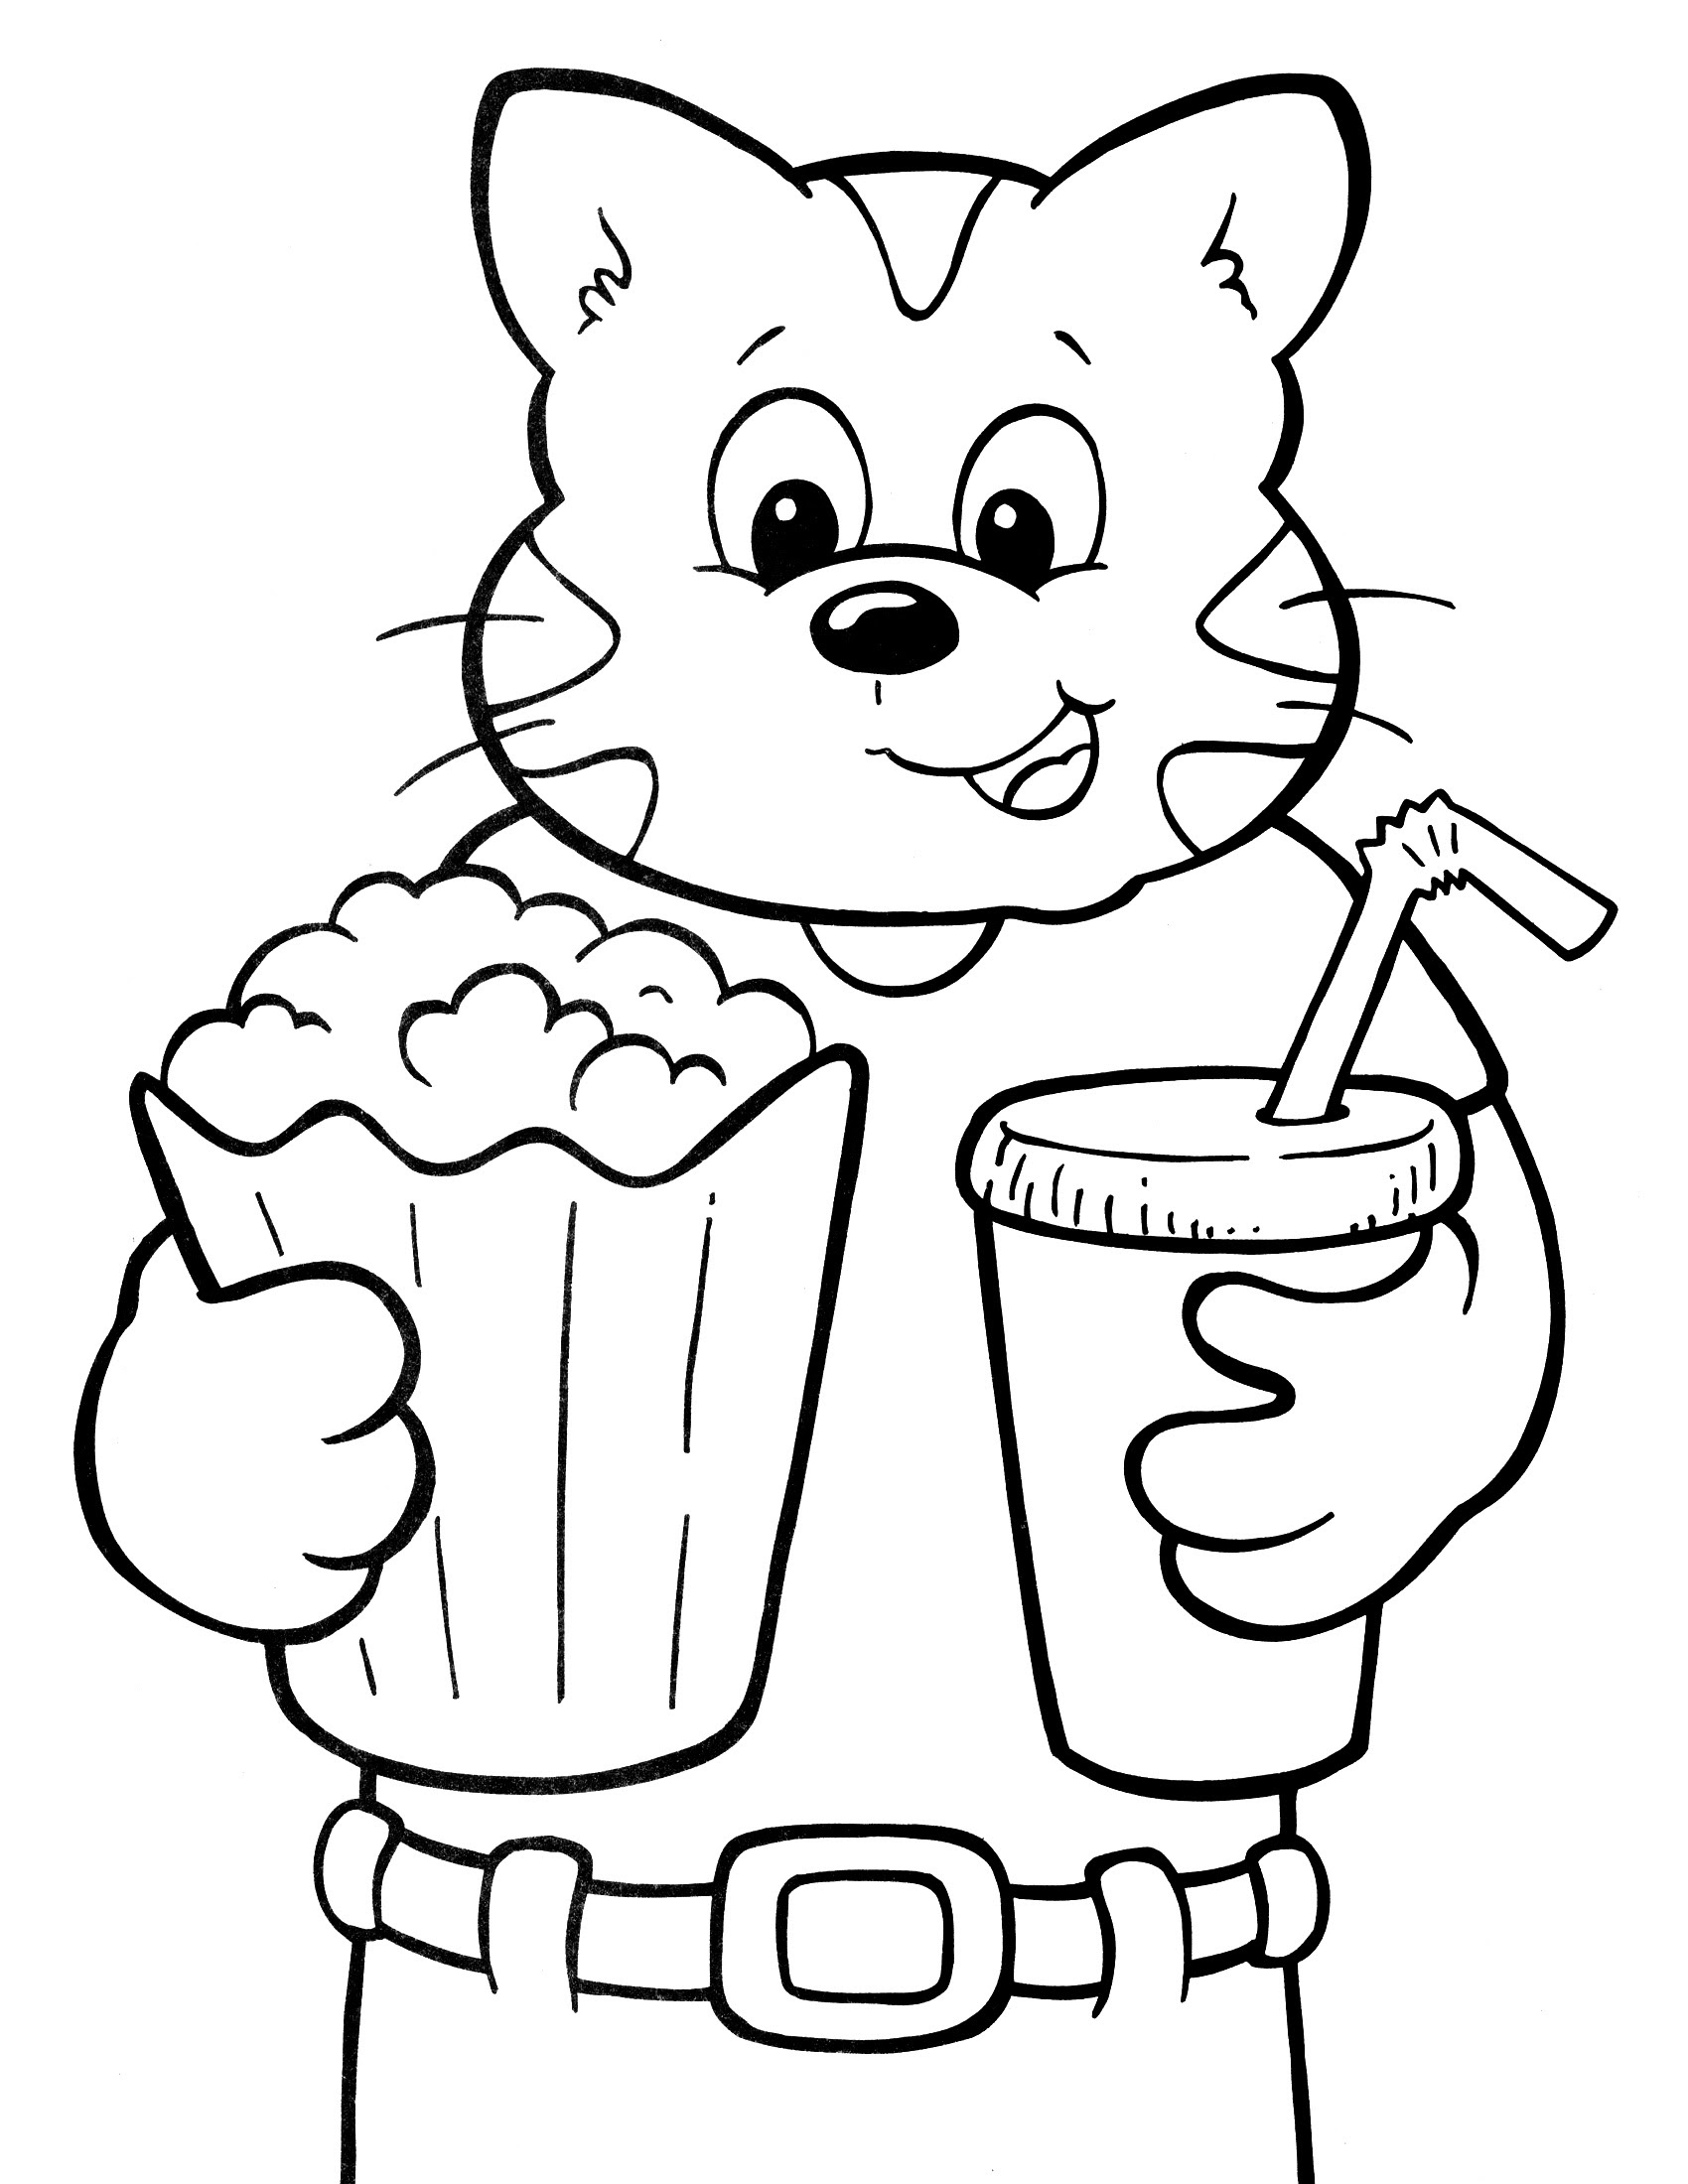 Crayola Coloring Pages for Kids – Learning Printable